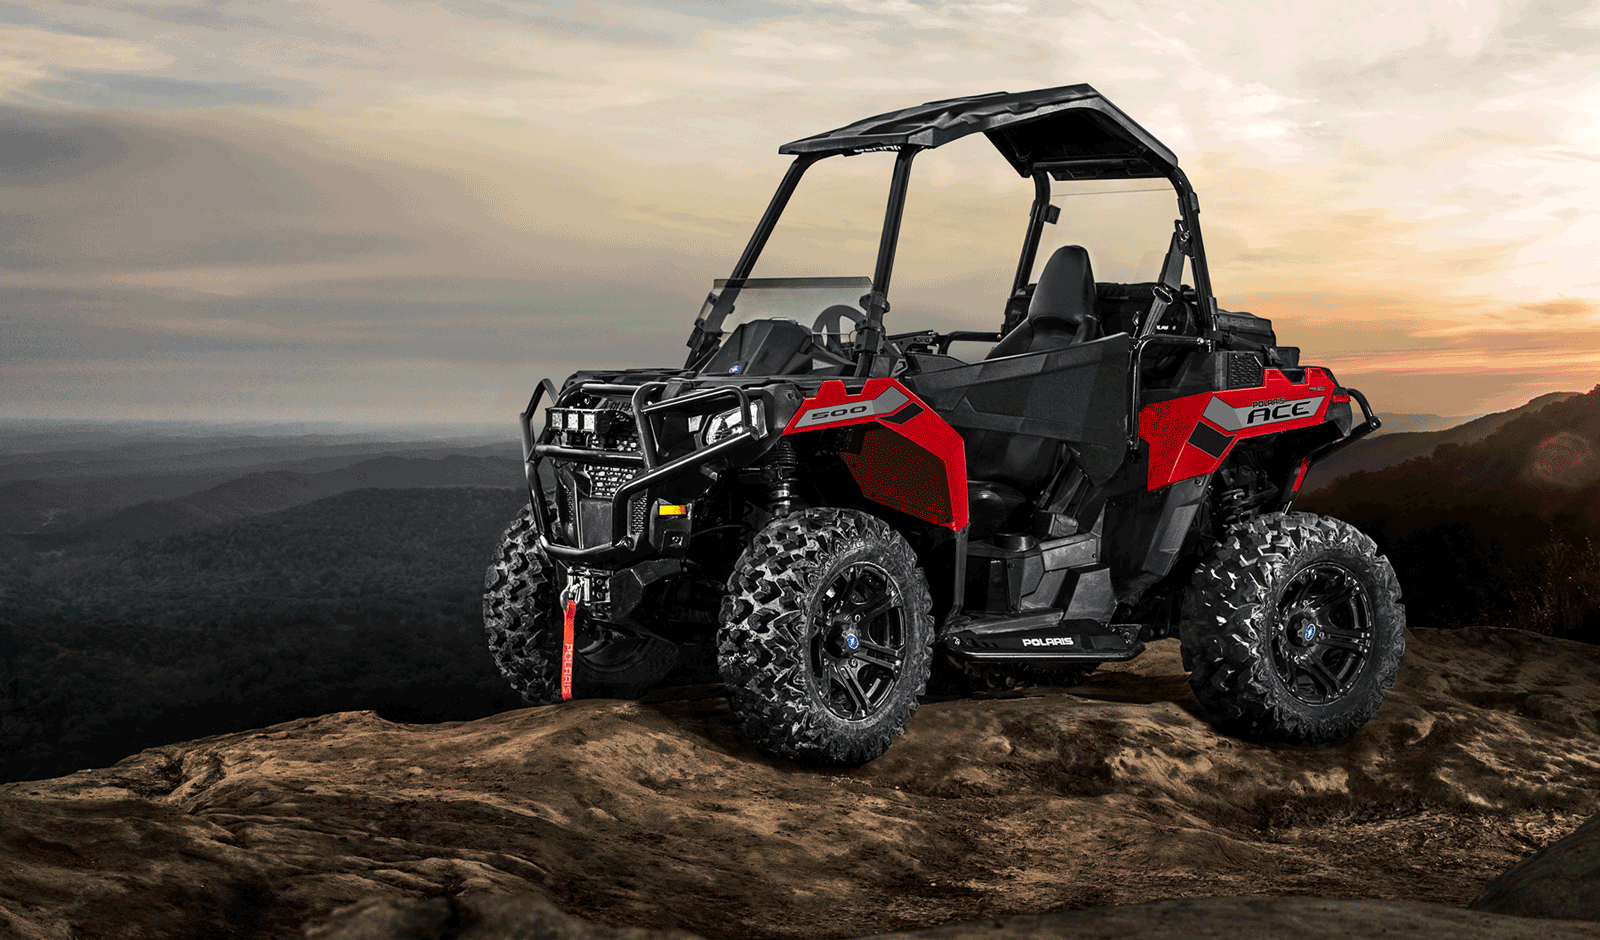 Polaris Off-Road Vehicles Are Now Available! - Military ...